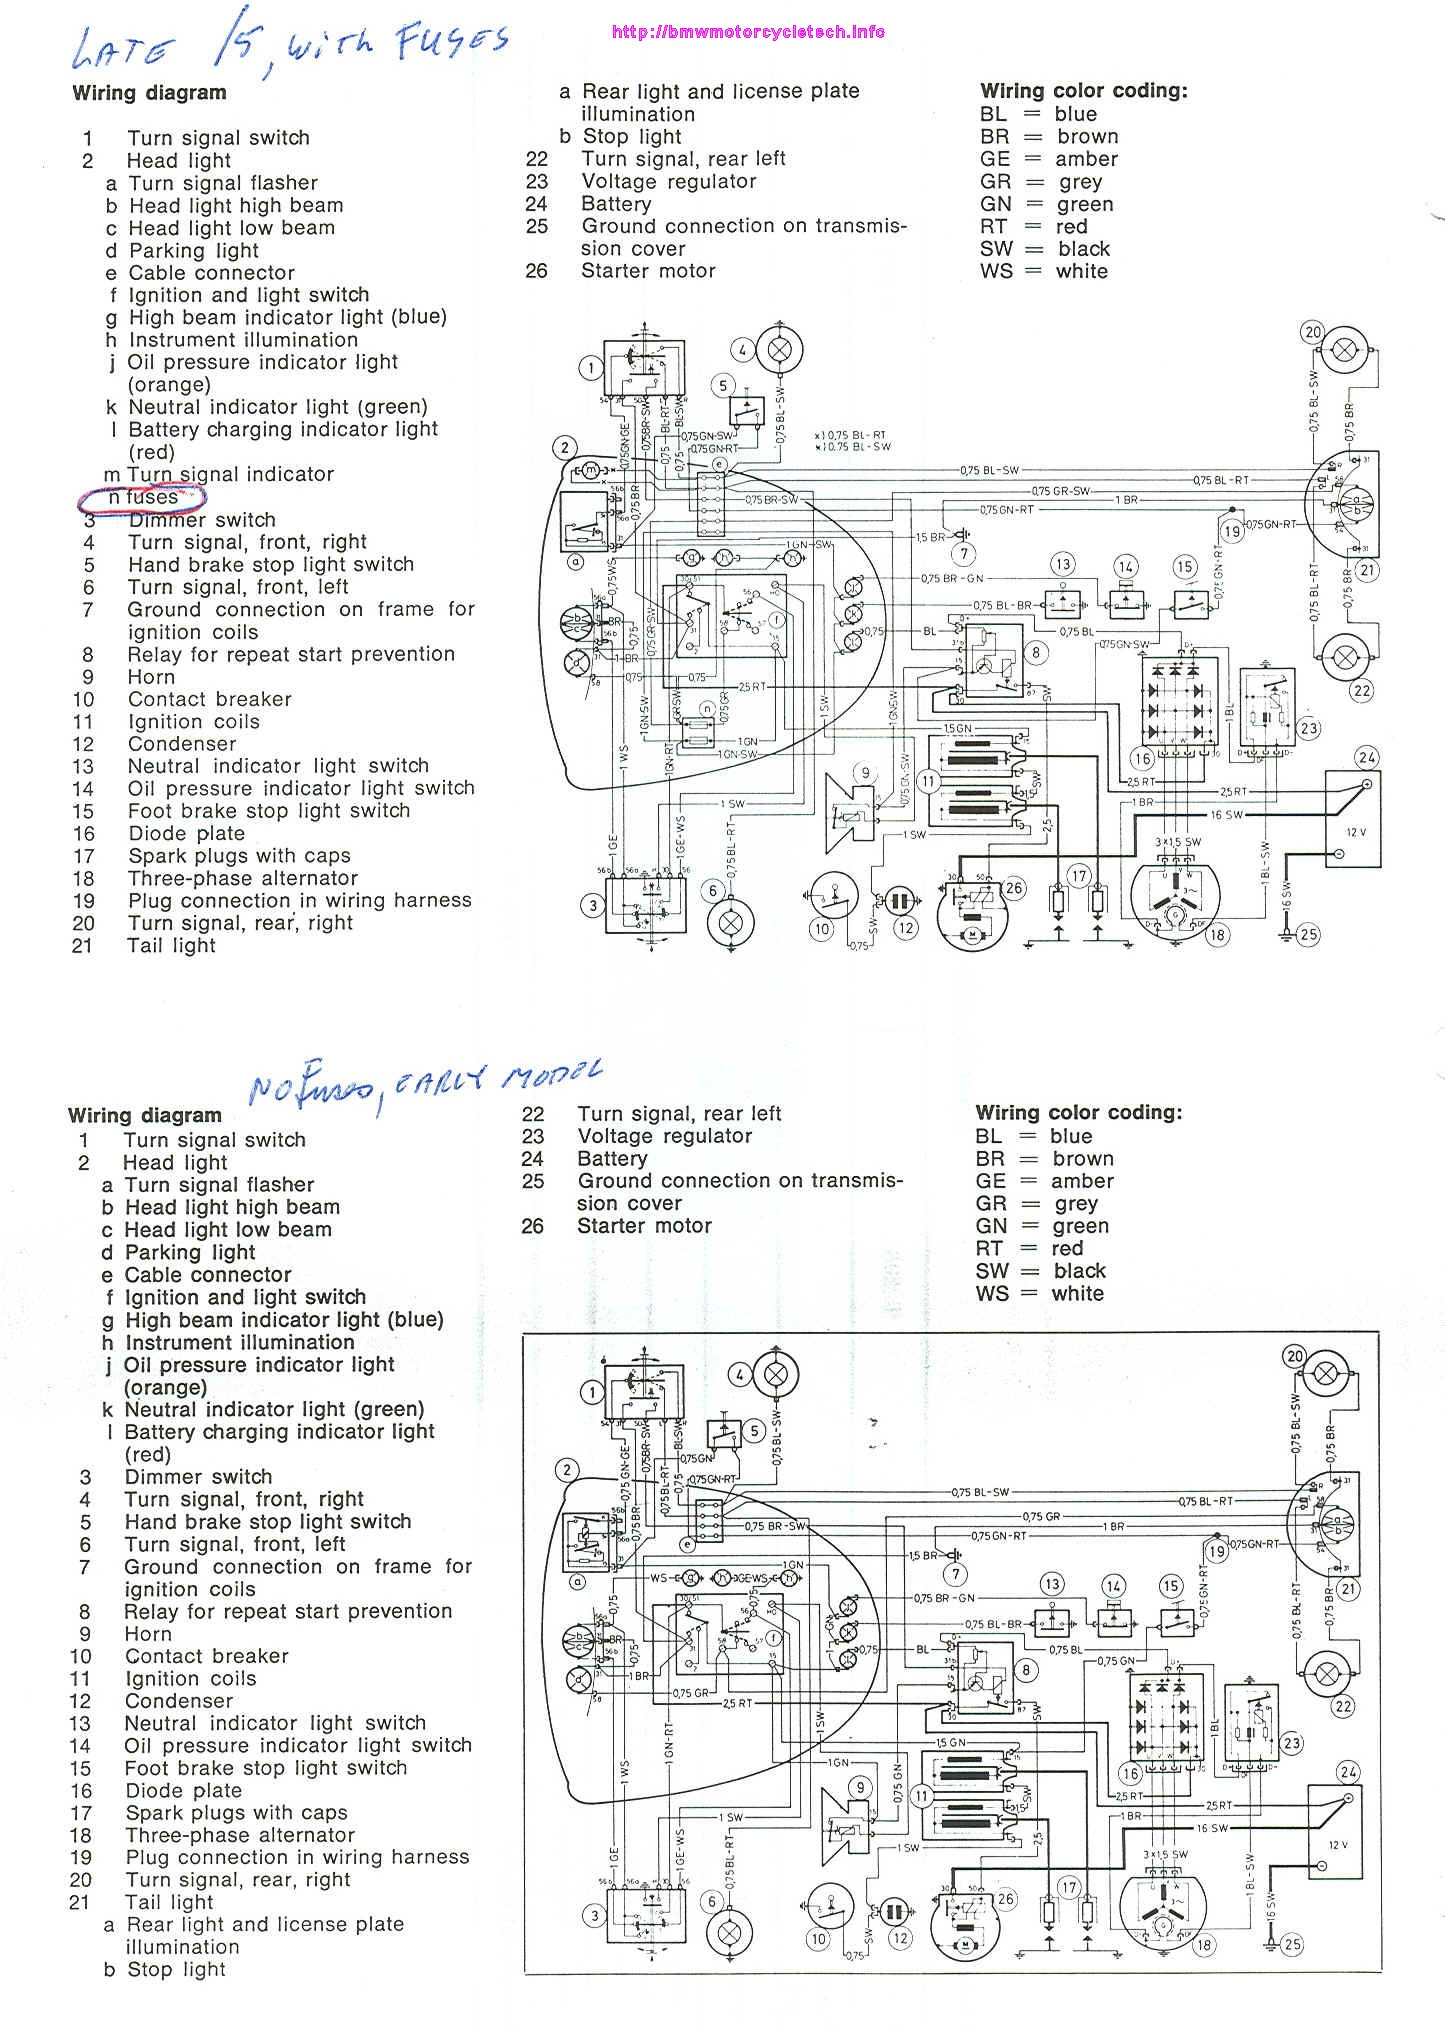 Cushman Titan Wiring Diagram together with 1823989 Windstar Fan Wiring Help besides How To Fix Wire Harness For Xg 470 Gas Scooter besides Yfm400fwn Wiring Diagrams further Teseh 49cc Carburetor Diagram. on gas scooter wiring diagram